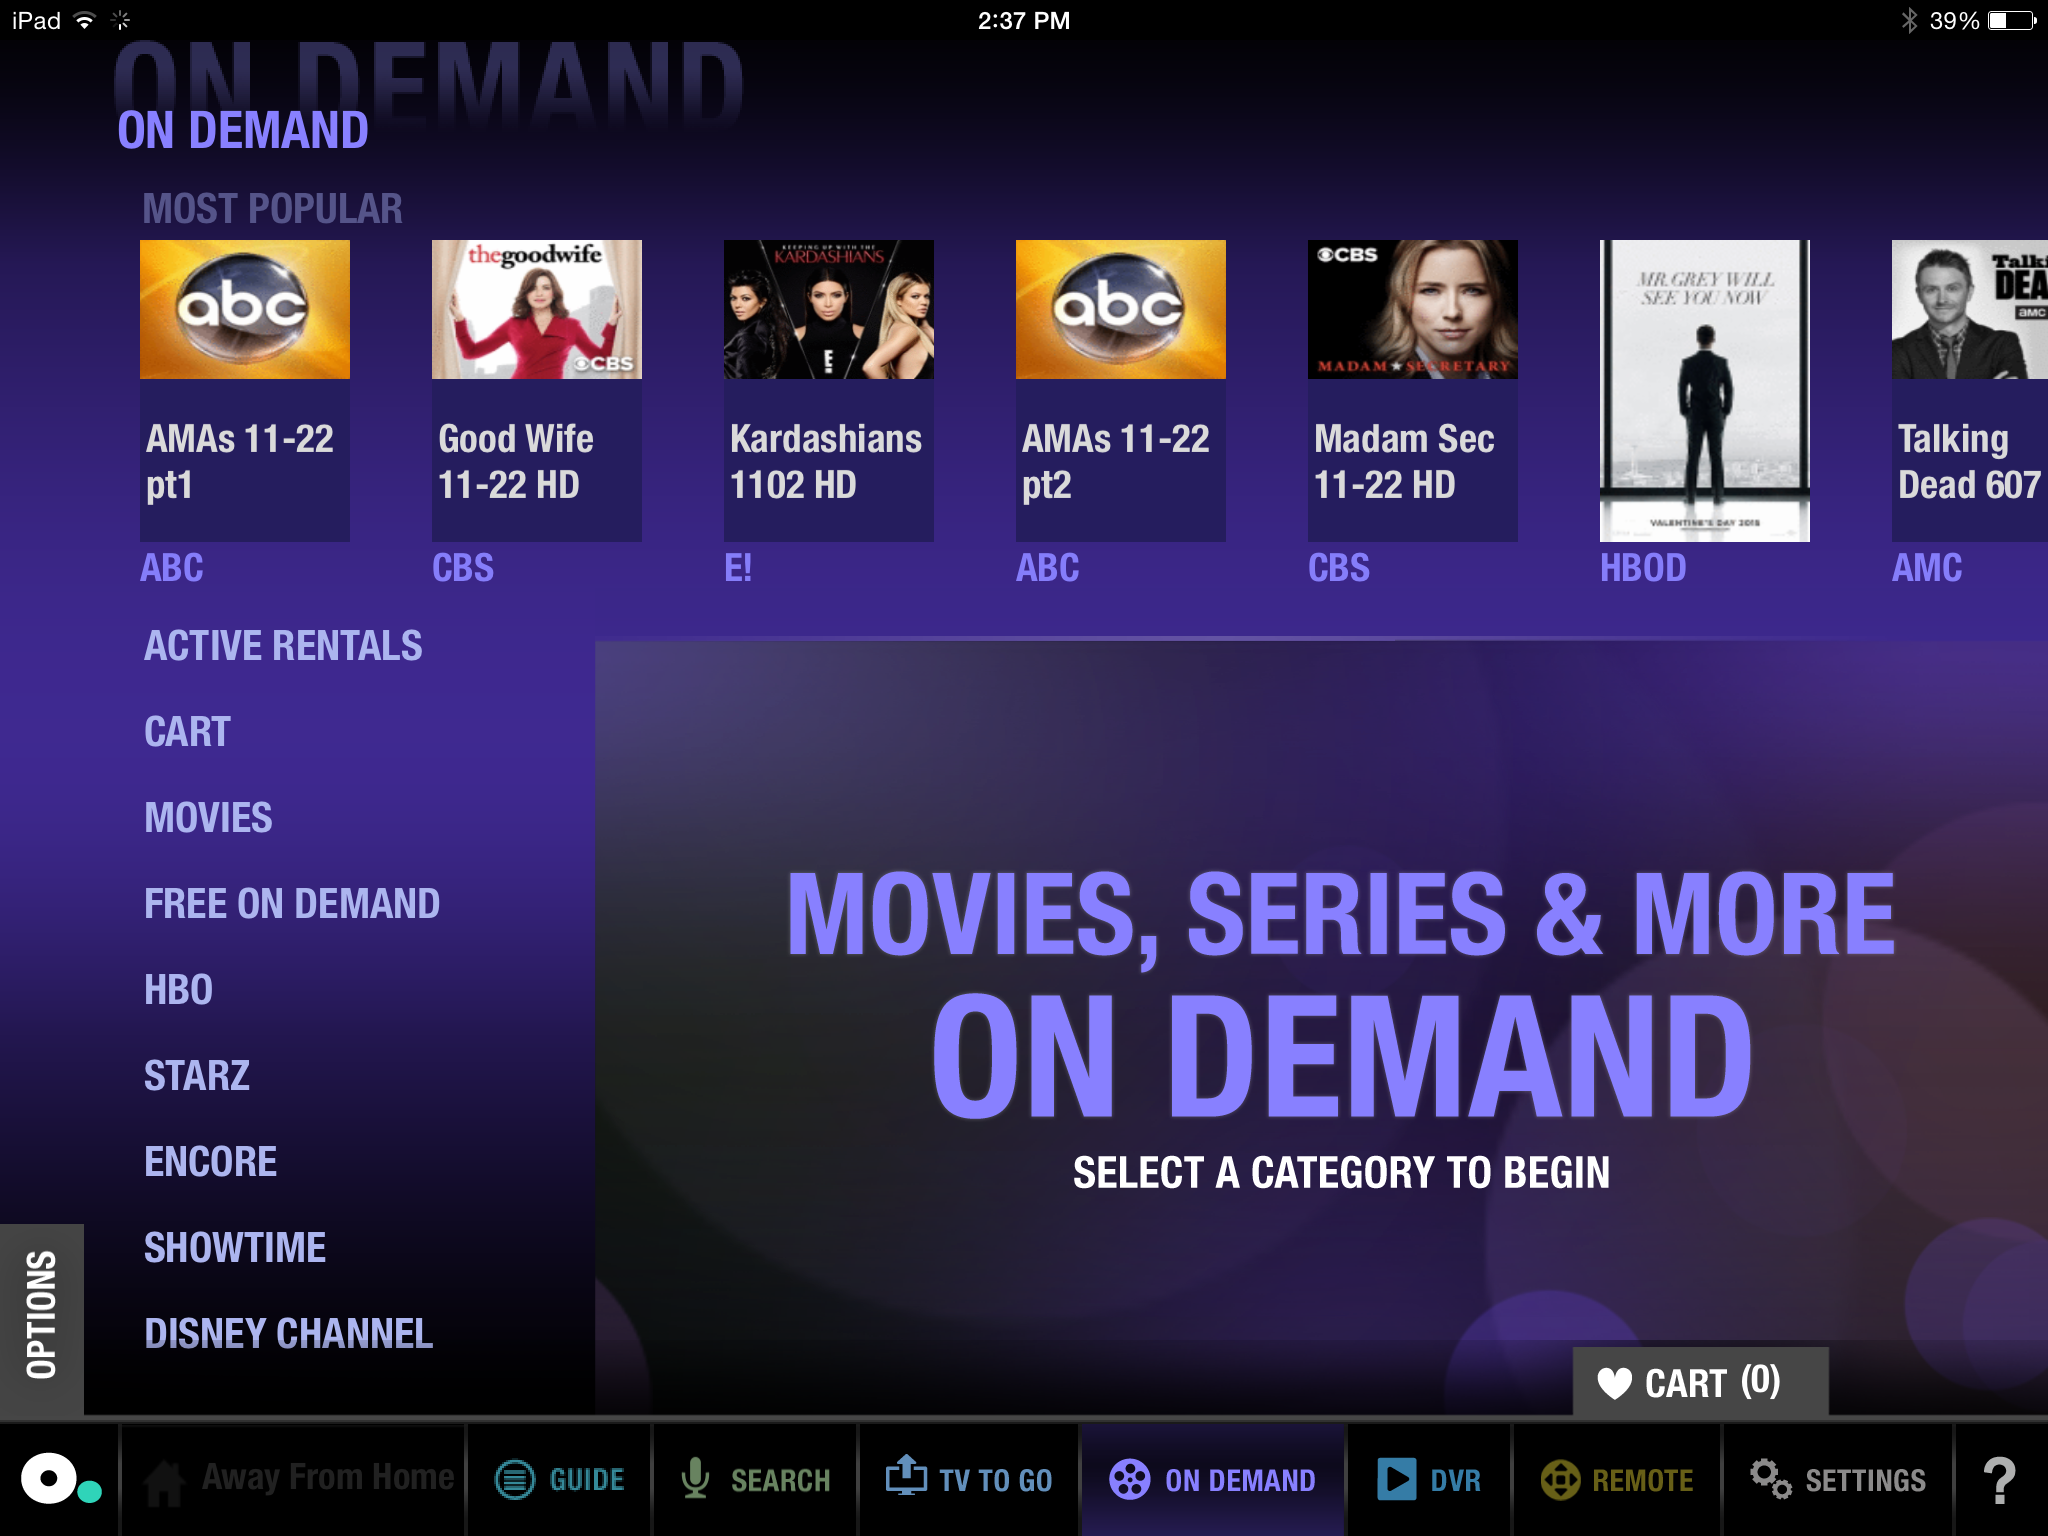 Phone Can I Watch Live Tv On My Android Phone download the optimum app on demand viewing is not available laptop at this time